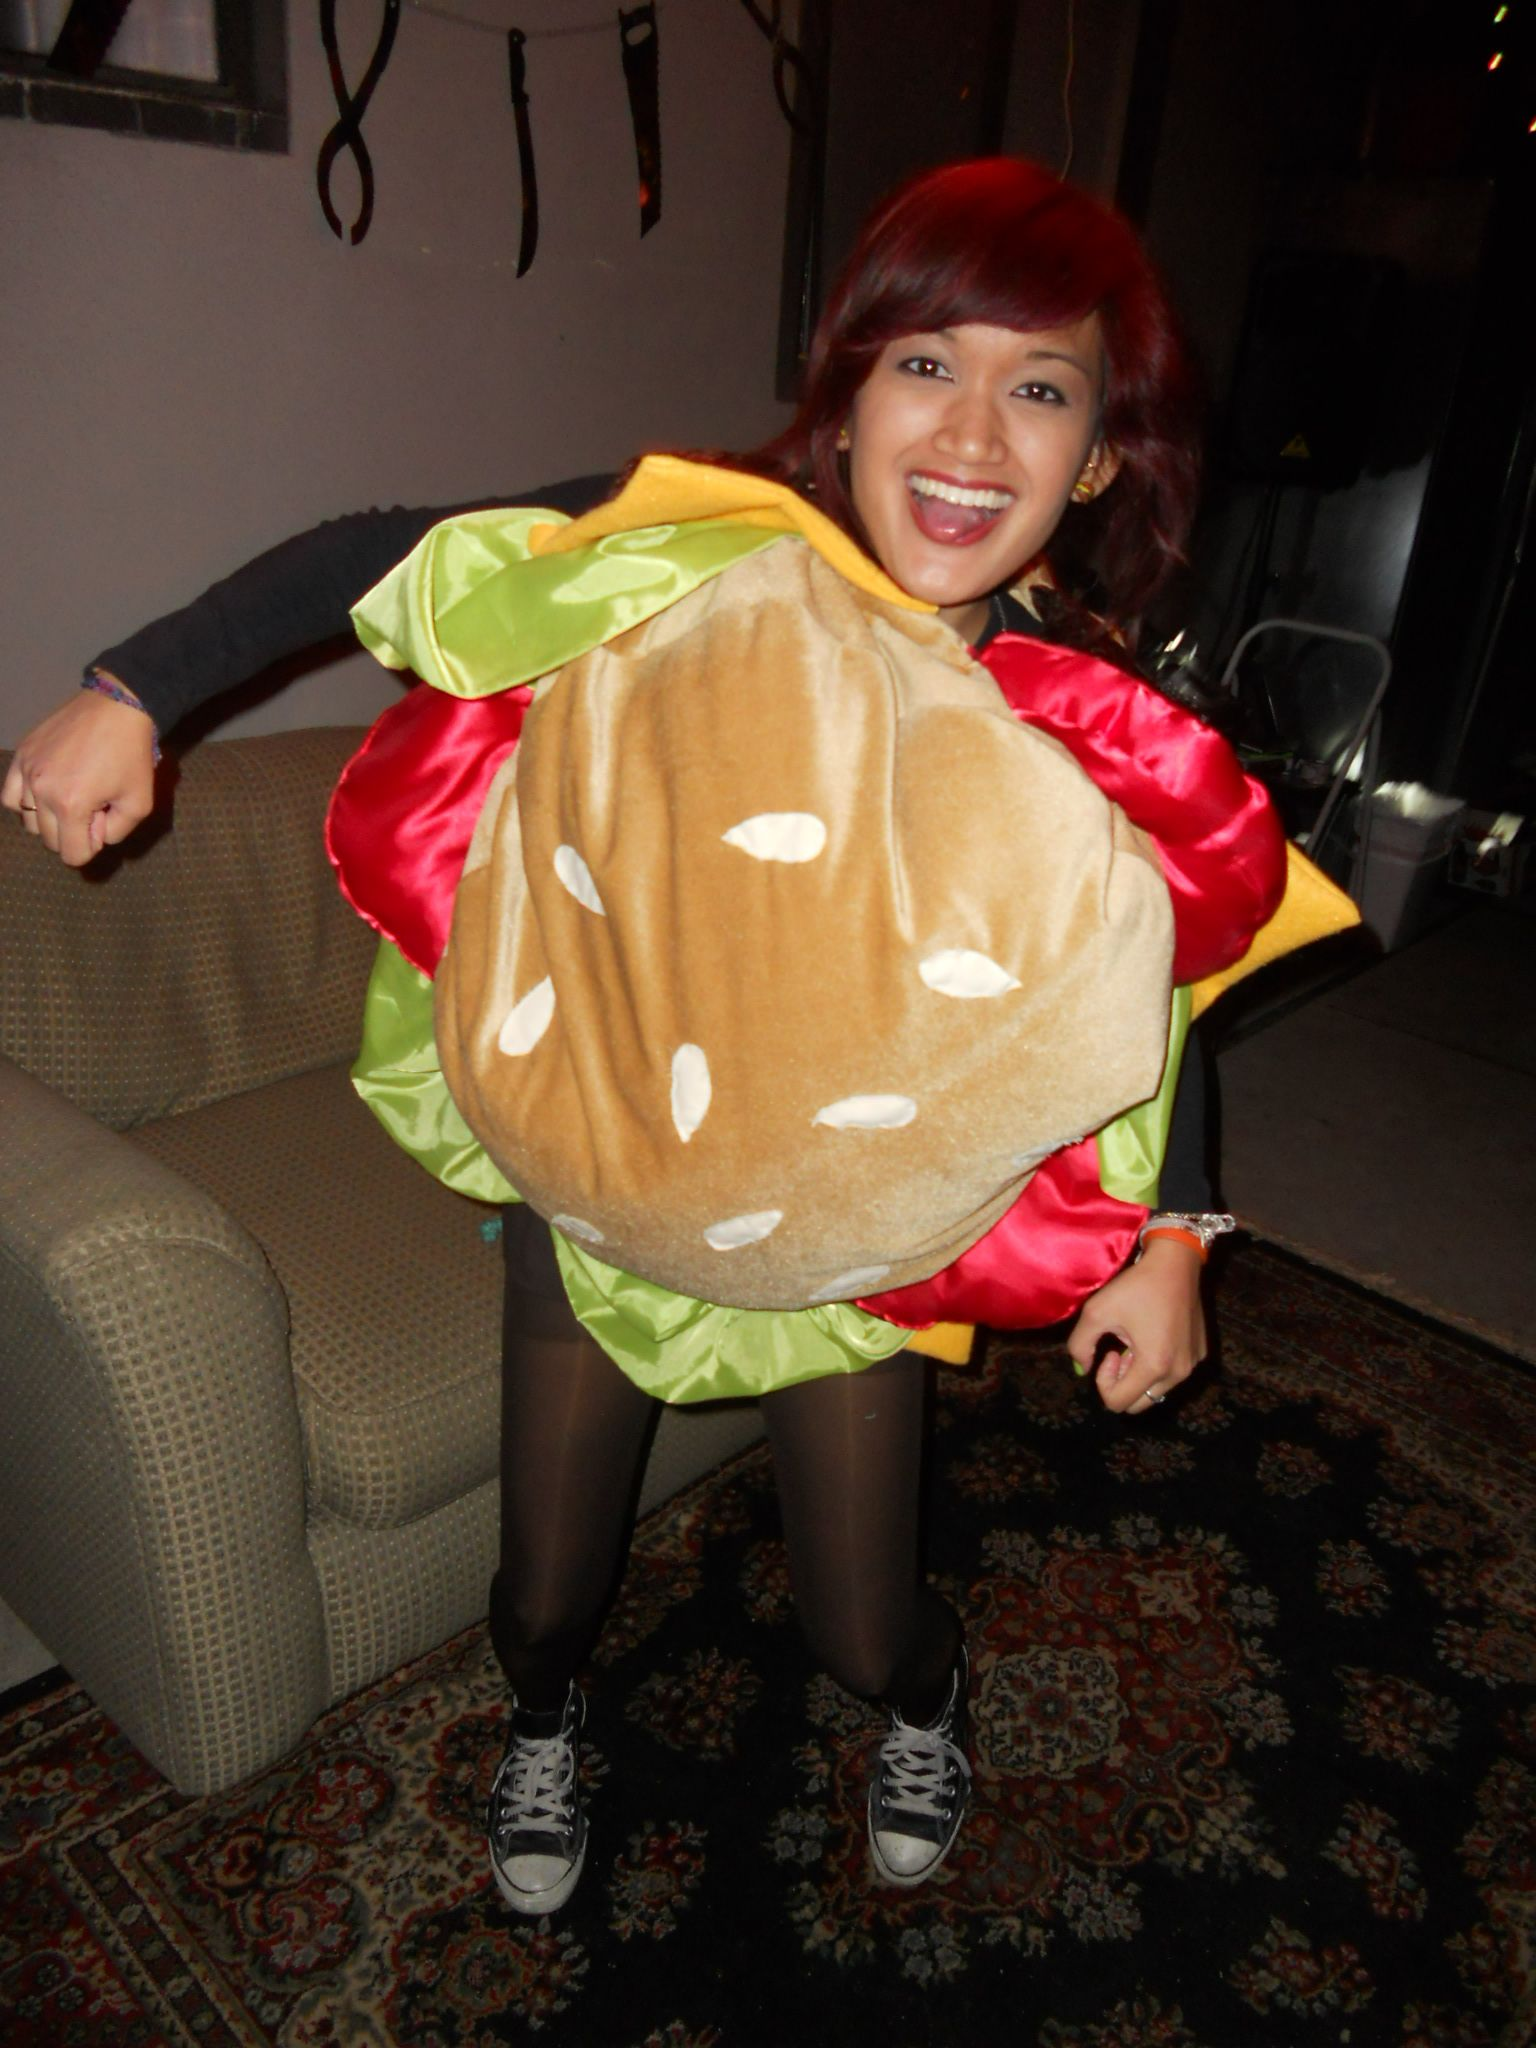 Adult Halloween Costume Hamburger Cheeseburger Pickle Cheese Burger Mens Costume Womens Costume Teen Costume Fast Food Funny McDonalds Bun r9PjS